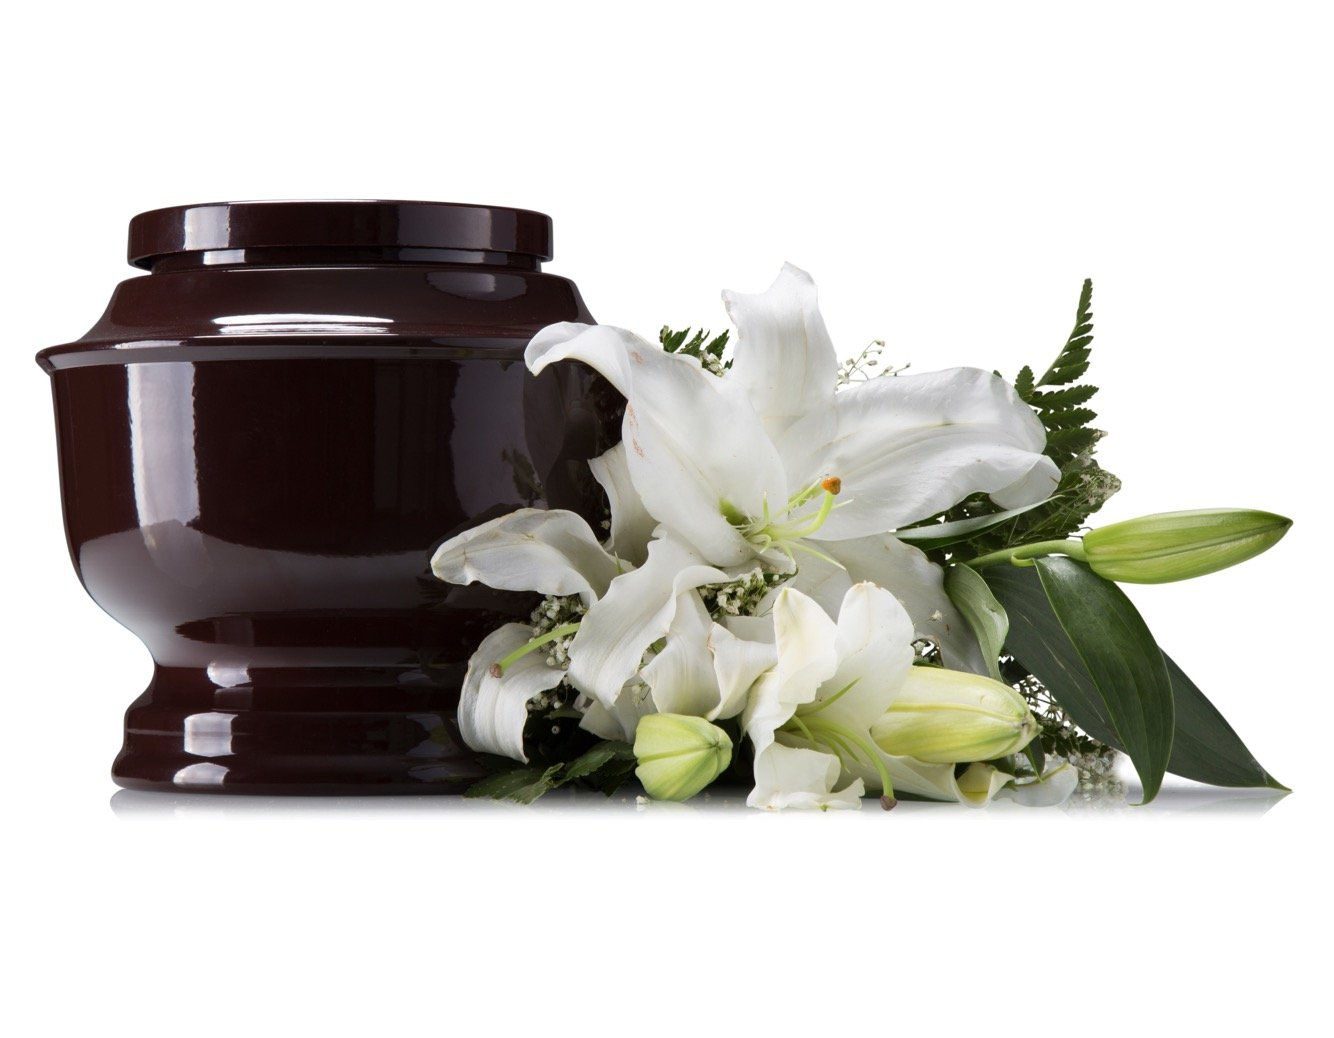 SmartChoice Classic Funeral Cremation Urn for Human Ashes, a Variety of Colors Available, Adult, with Velvet Bag (Black)